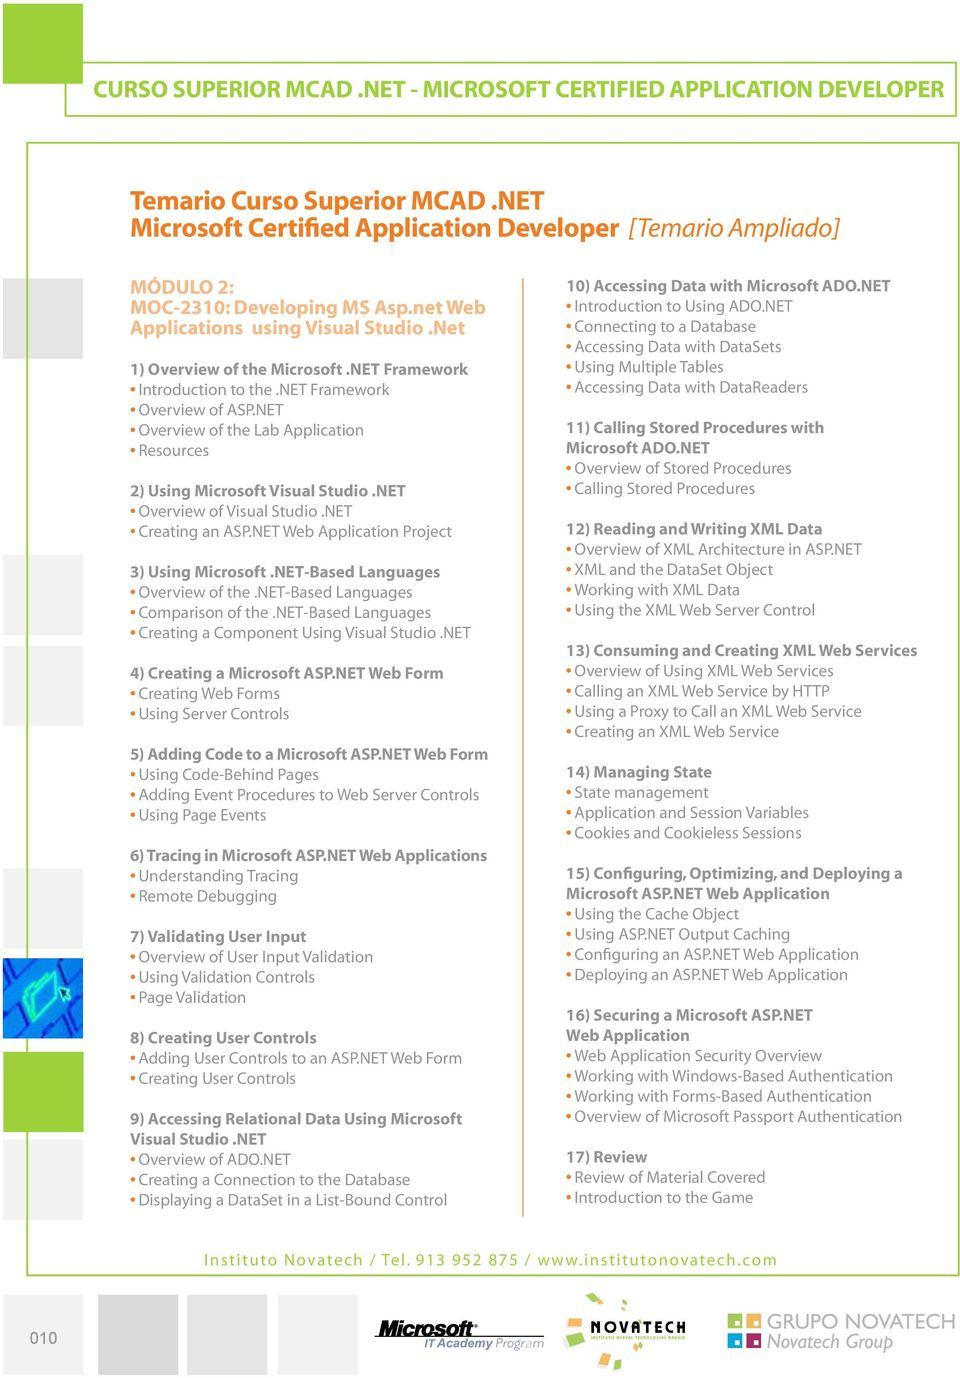 NET Web Application Project 3) Using Microsoft.NET-Based Languages Overview of the.net-based Languages Comparison of the.net-based Languages Creating a Component Using Visual Studio.